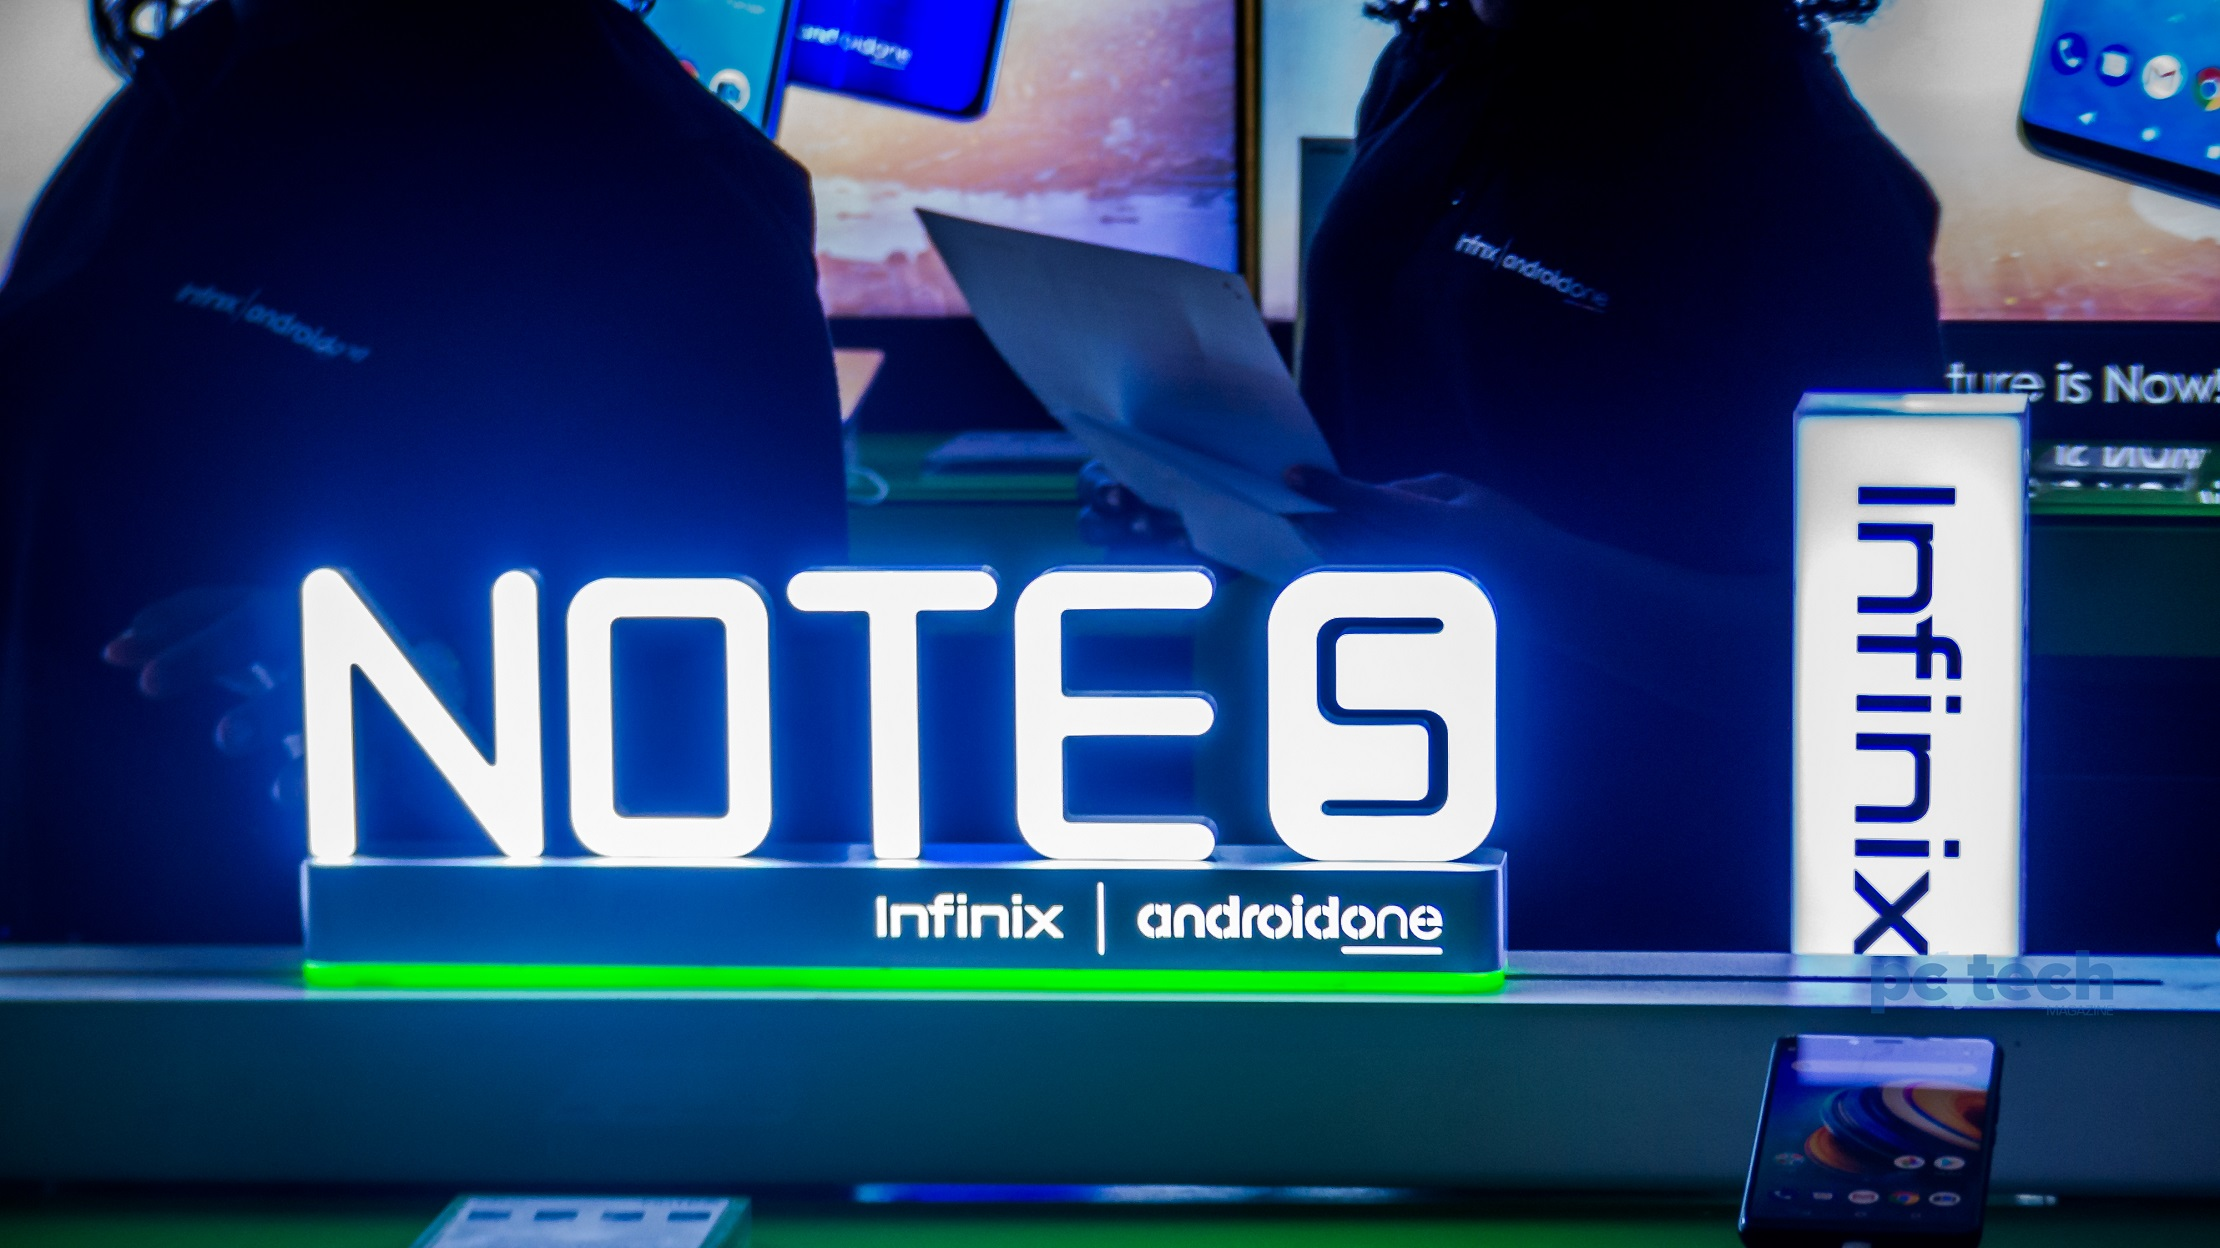 Launching the Infinix Note 5 at the Hotel Triangle in Kampala, Uganda on Monday 25th, June 2018.